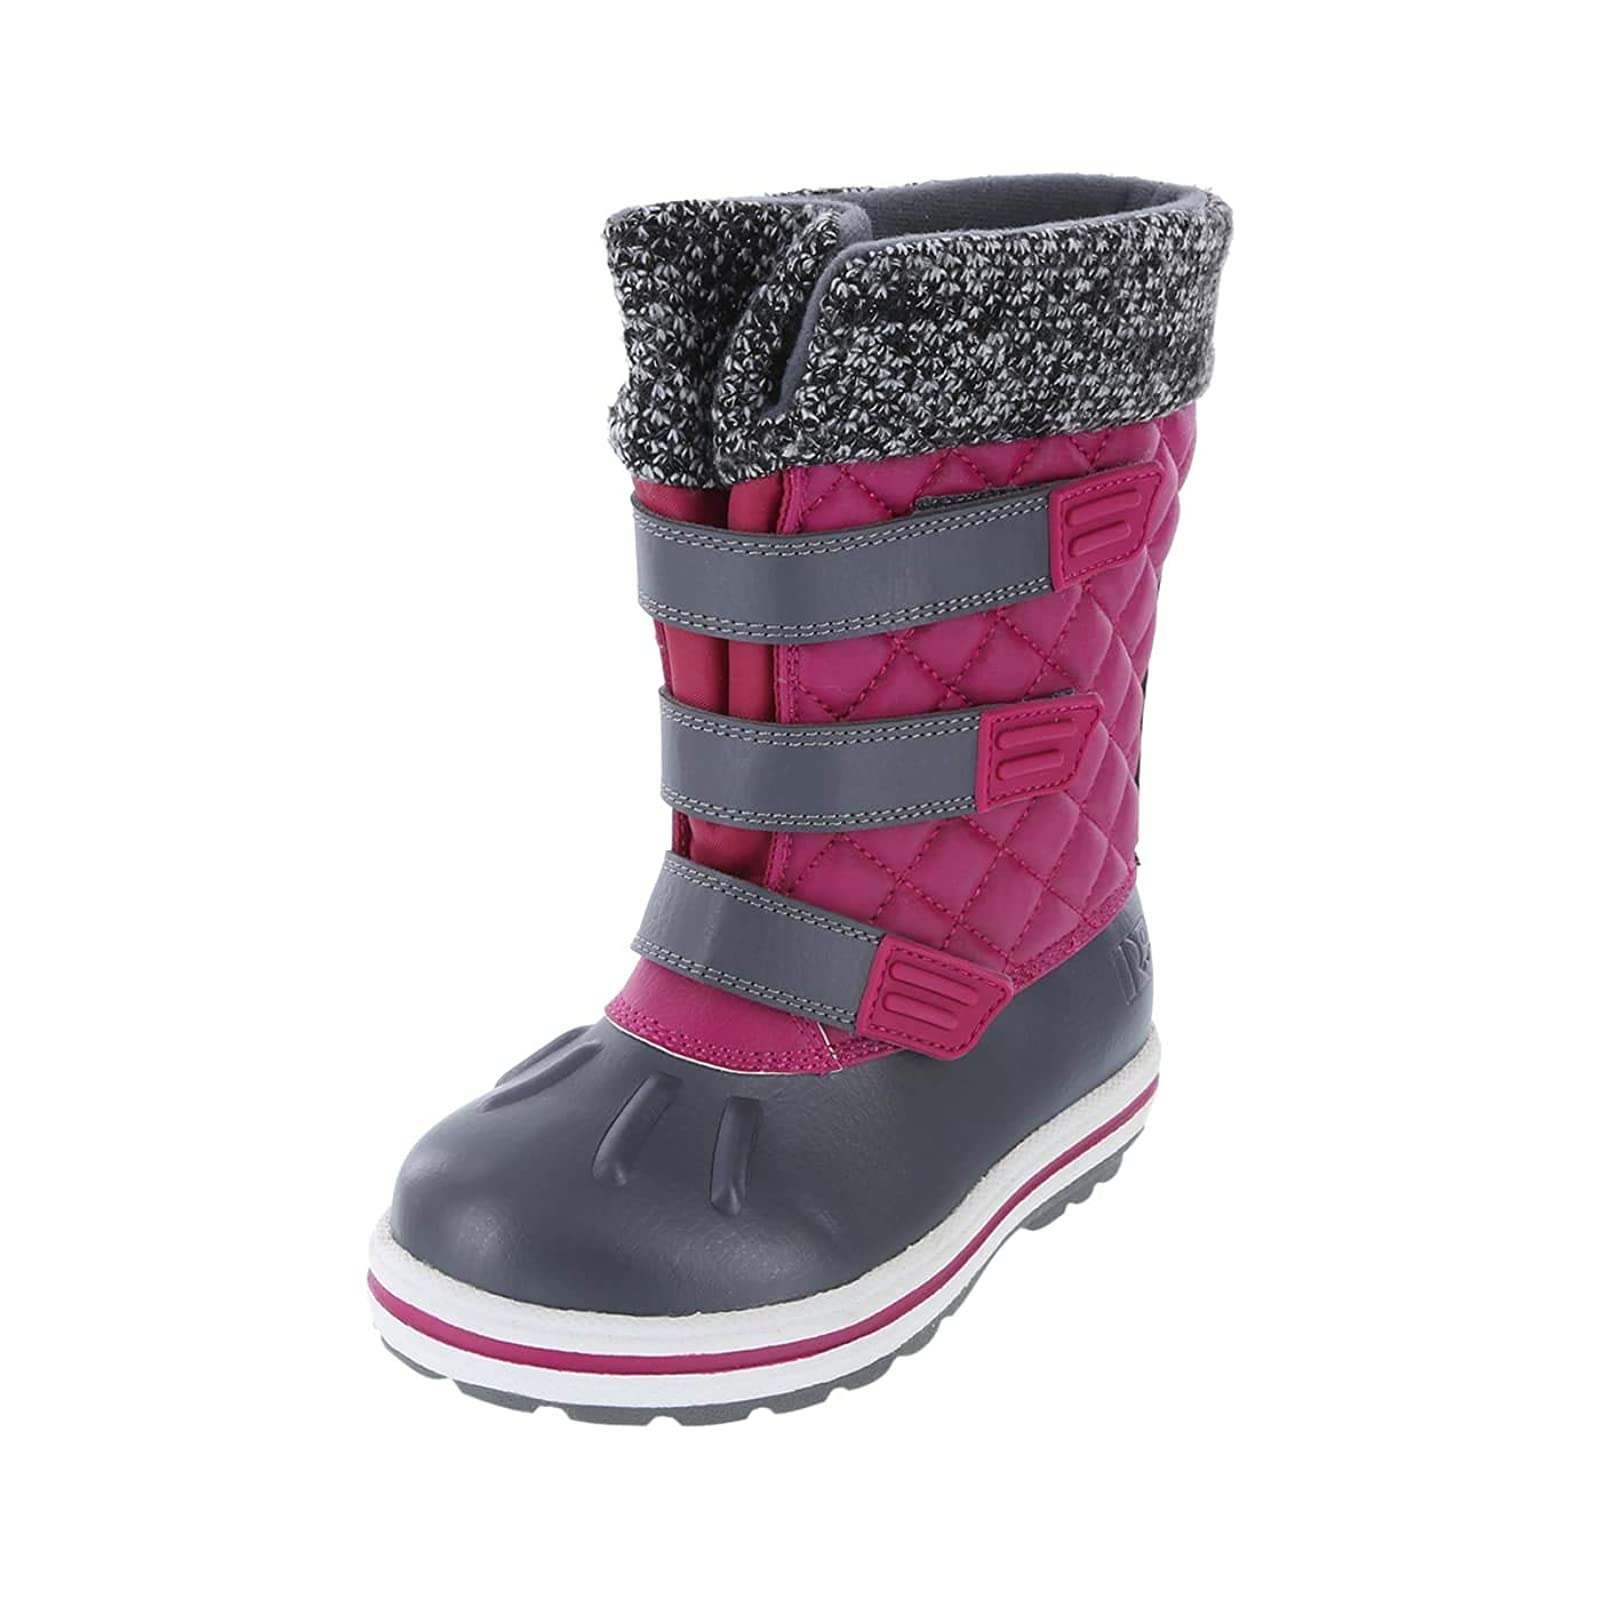 Rugged Outback Raspberry Grey Girls' Toddler -30 177447120 - 4